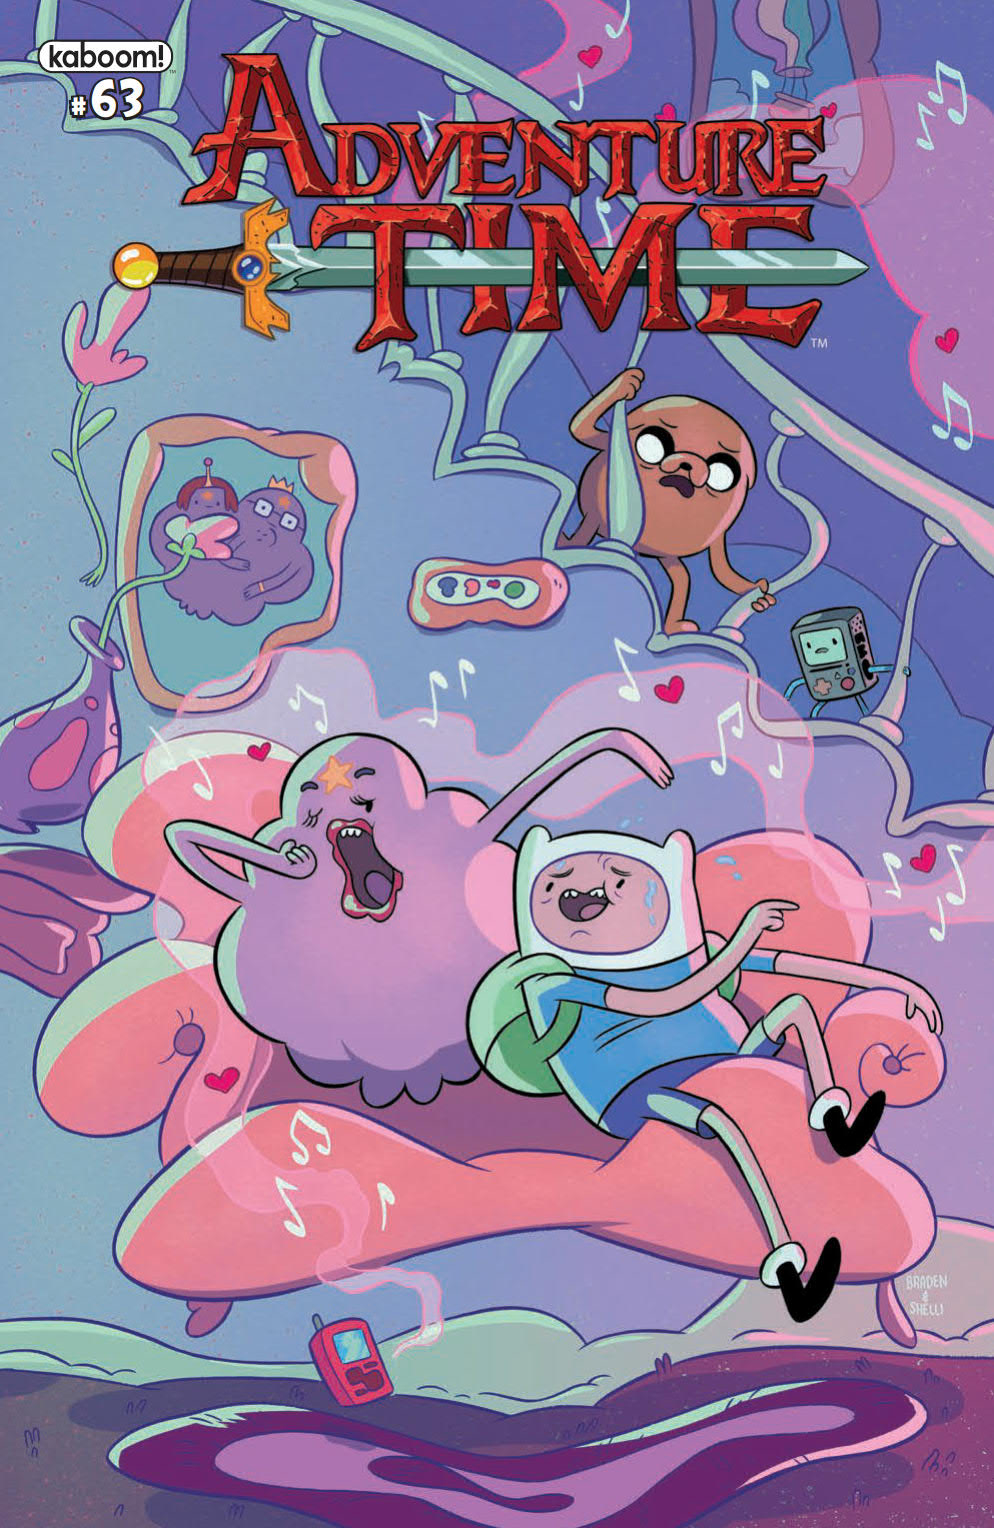 ADVENTURE TIME #63 CVR A PAROLINE & LAMB